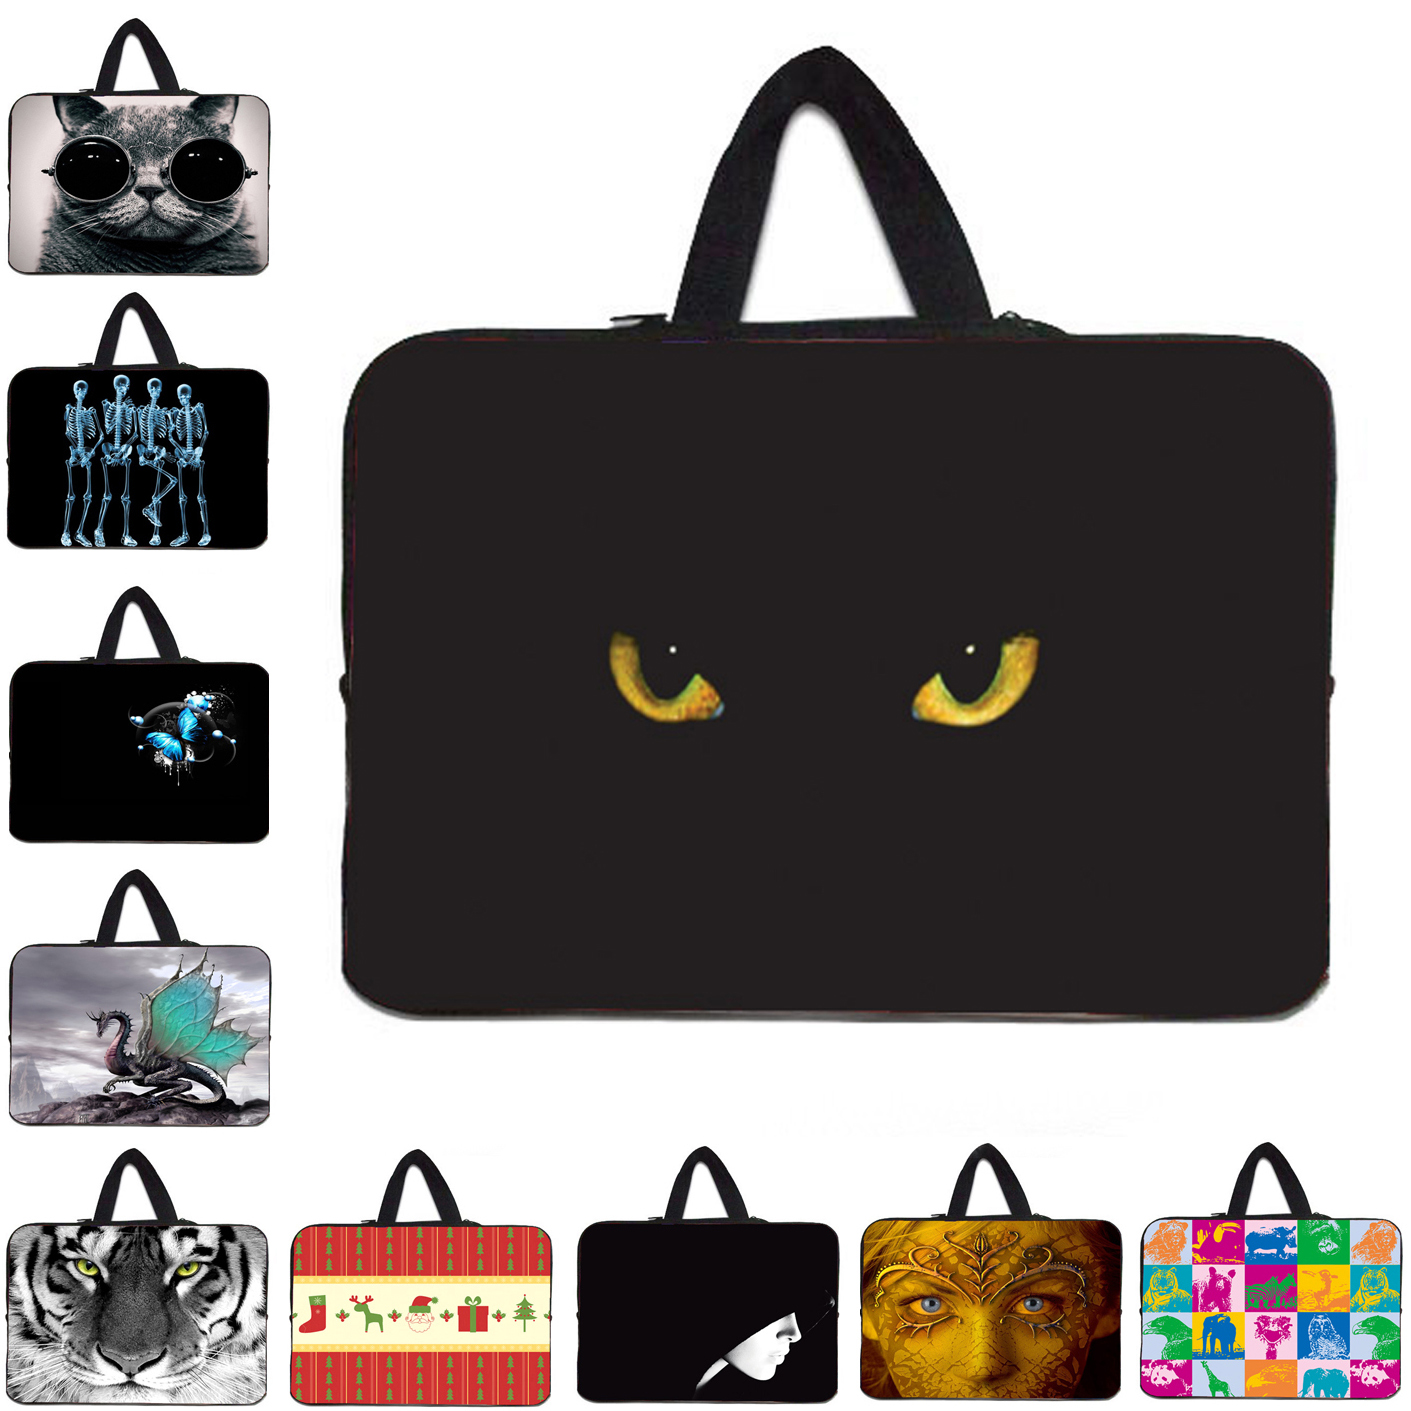 Sleeve Computer Zipper Pouch Bag 14 Inch 13 12 15 10 17 Soft Laptop Cases For Lenovo Dell Sony Chuwi Hi12 10 Chromebook Bag 15.6